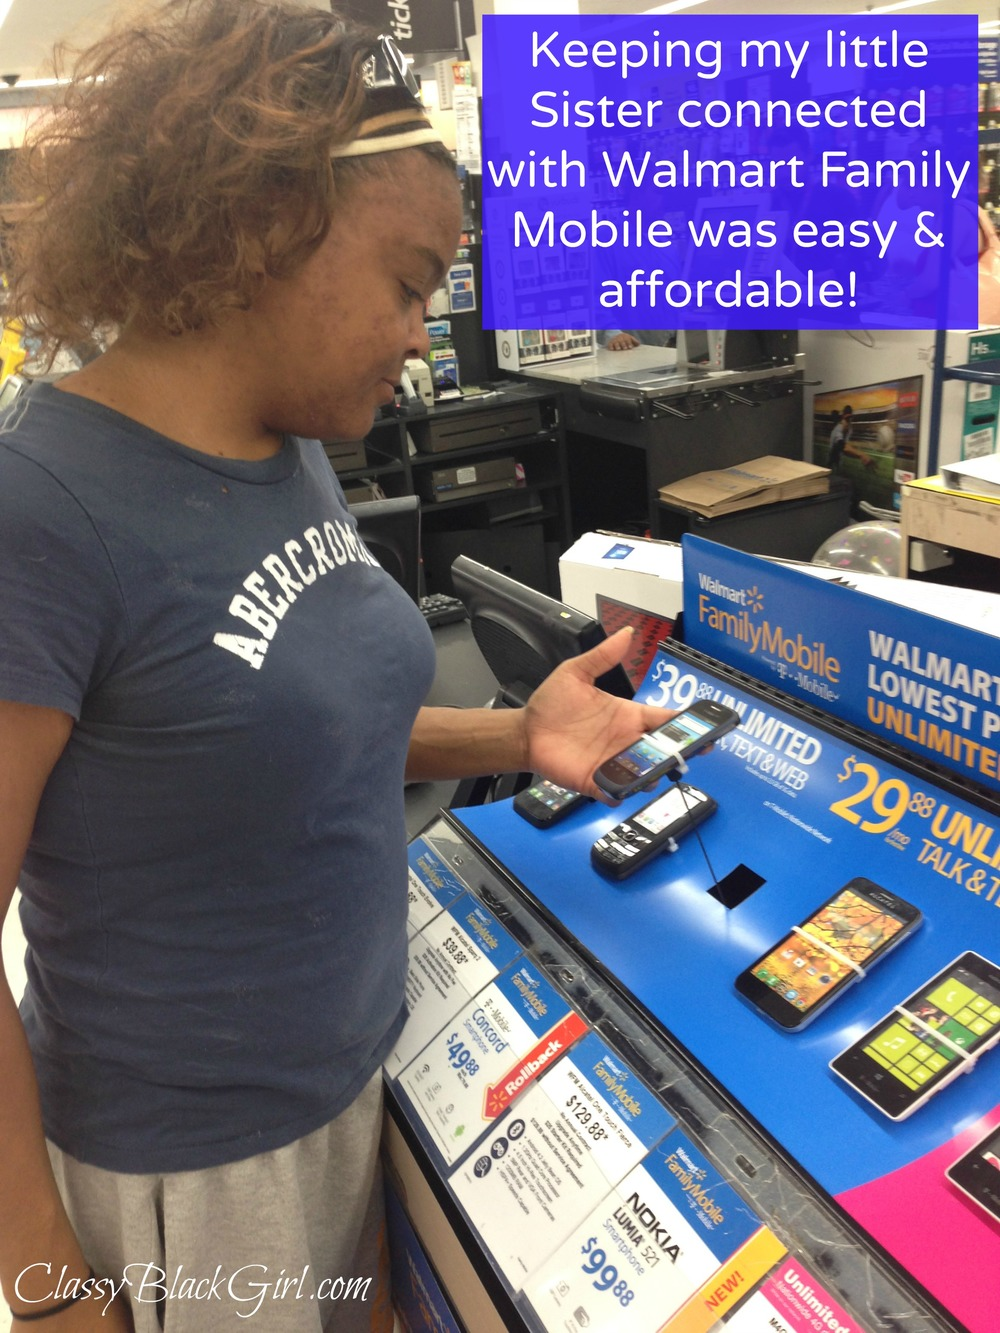 #FamilyMobile, ClassyBlackGirl.com, #CollectiveBias, #cbias, #shop, Lowest Priced Unlimited Plans